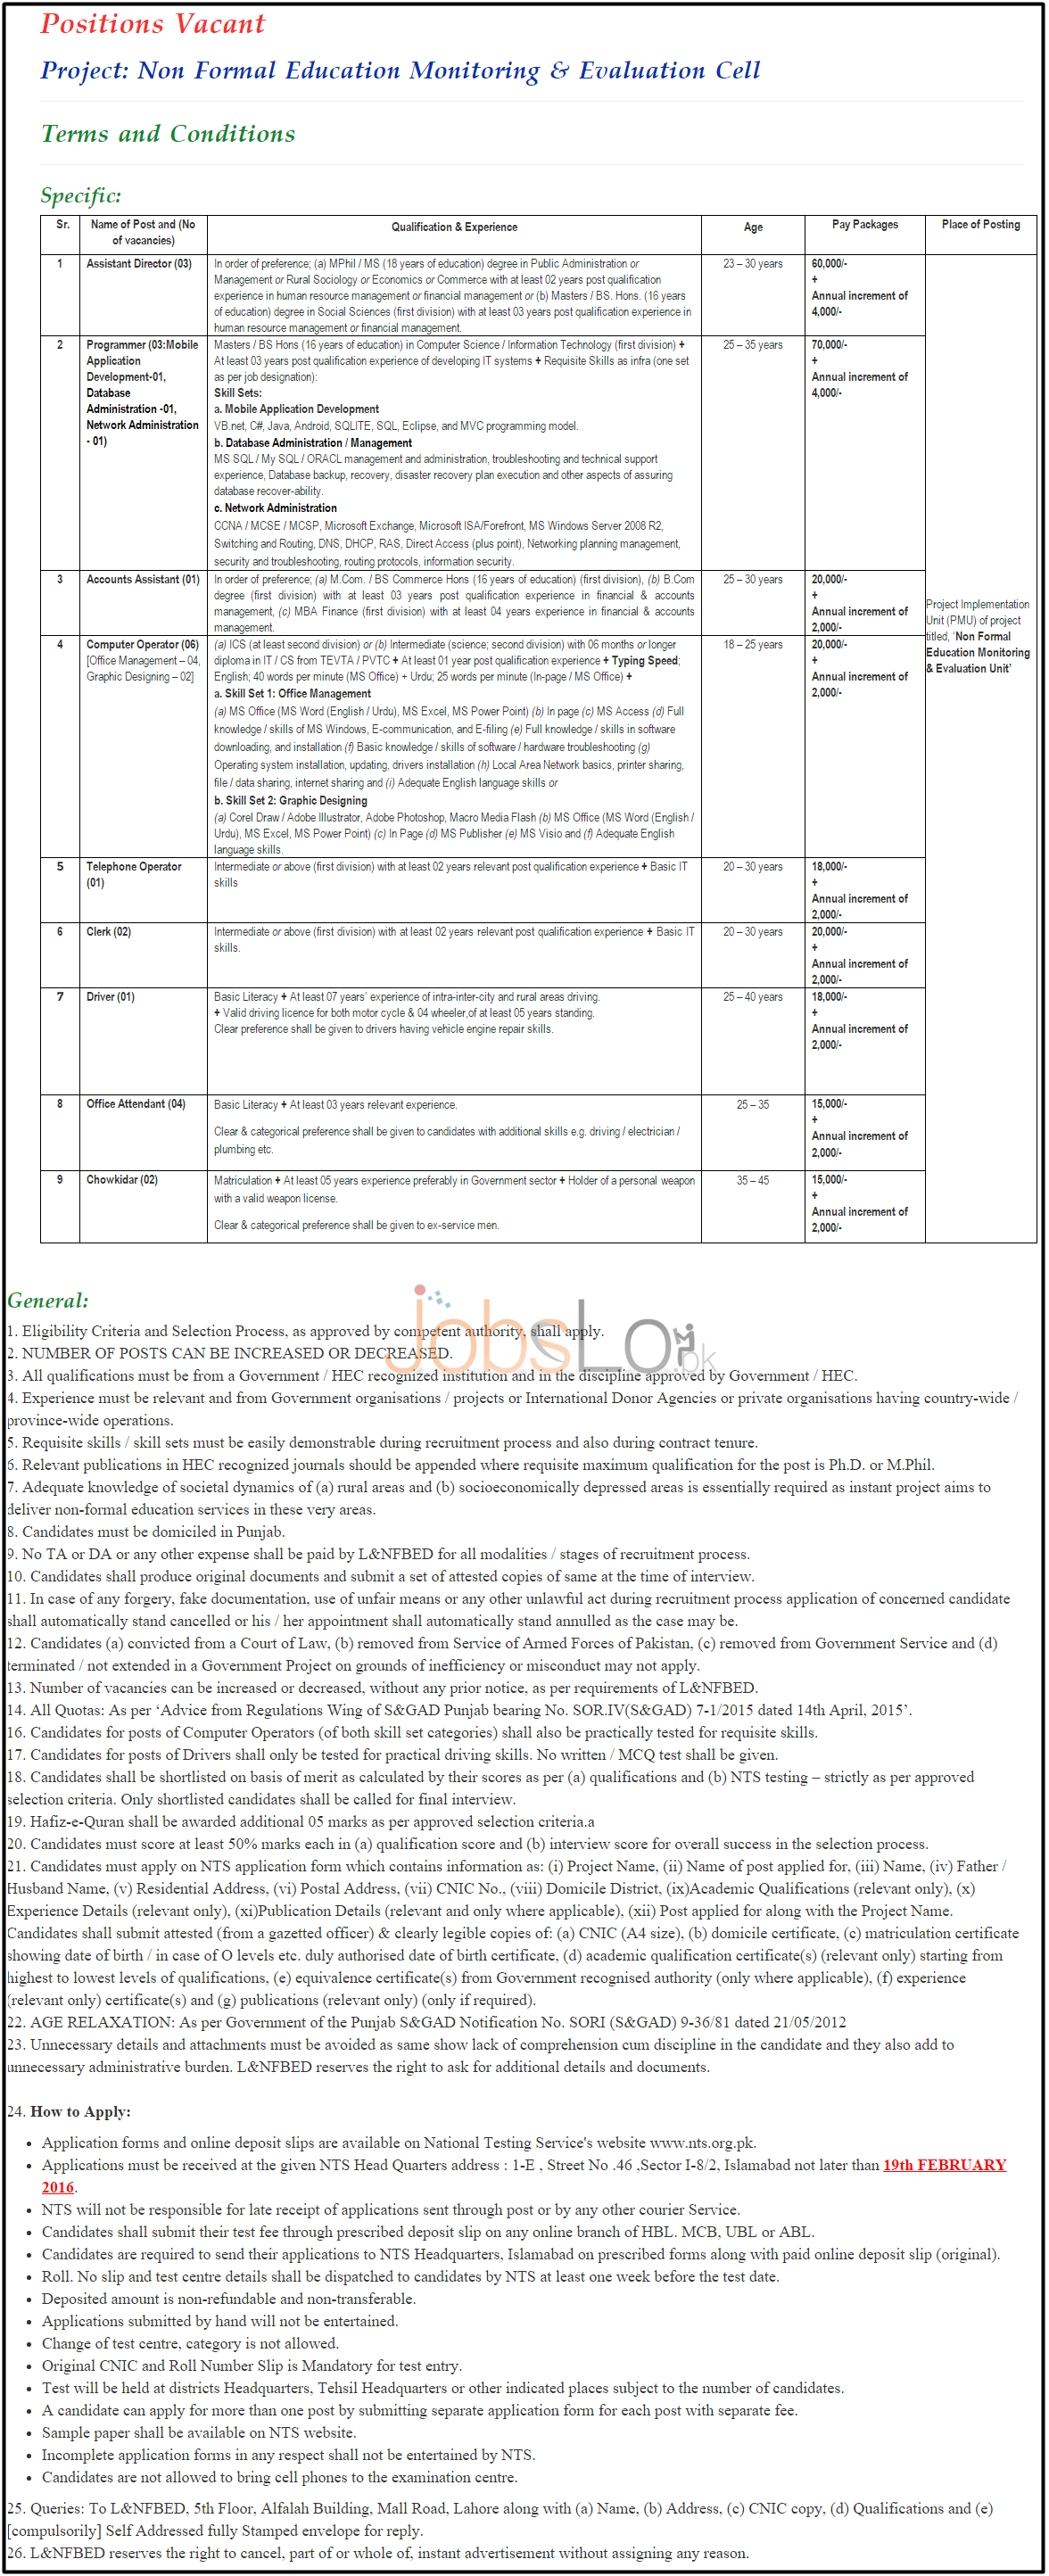 Jobs Opportunities in Literacy & NFBE Department NTS Punjab February 2016